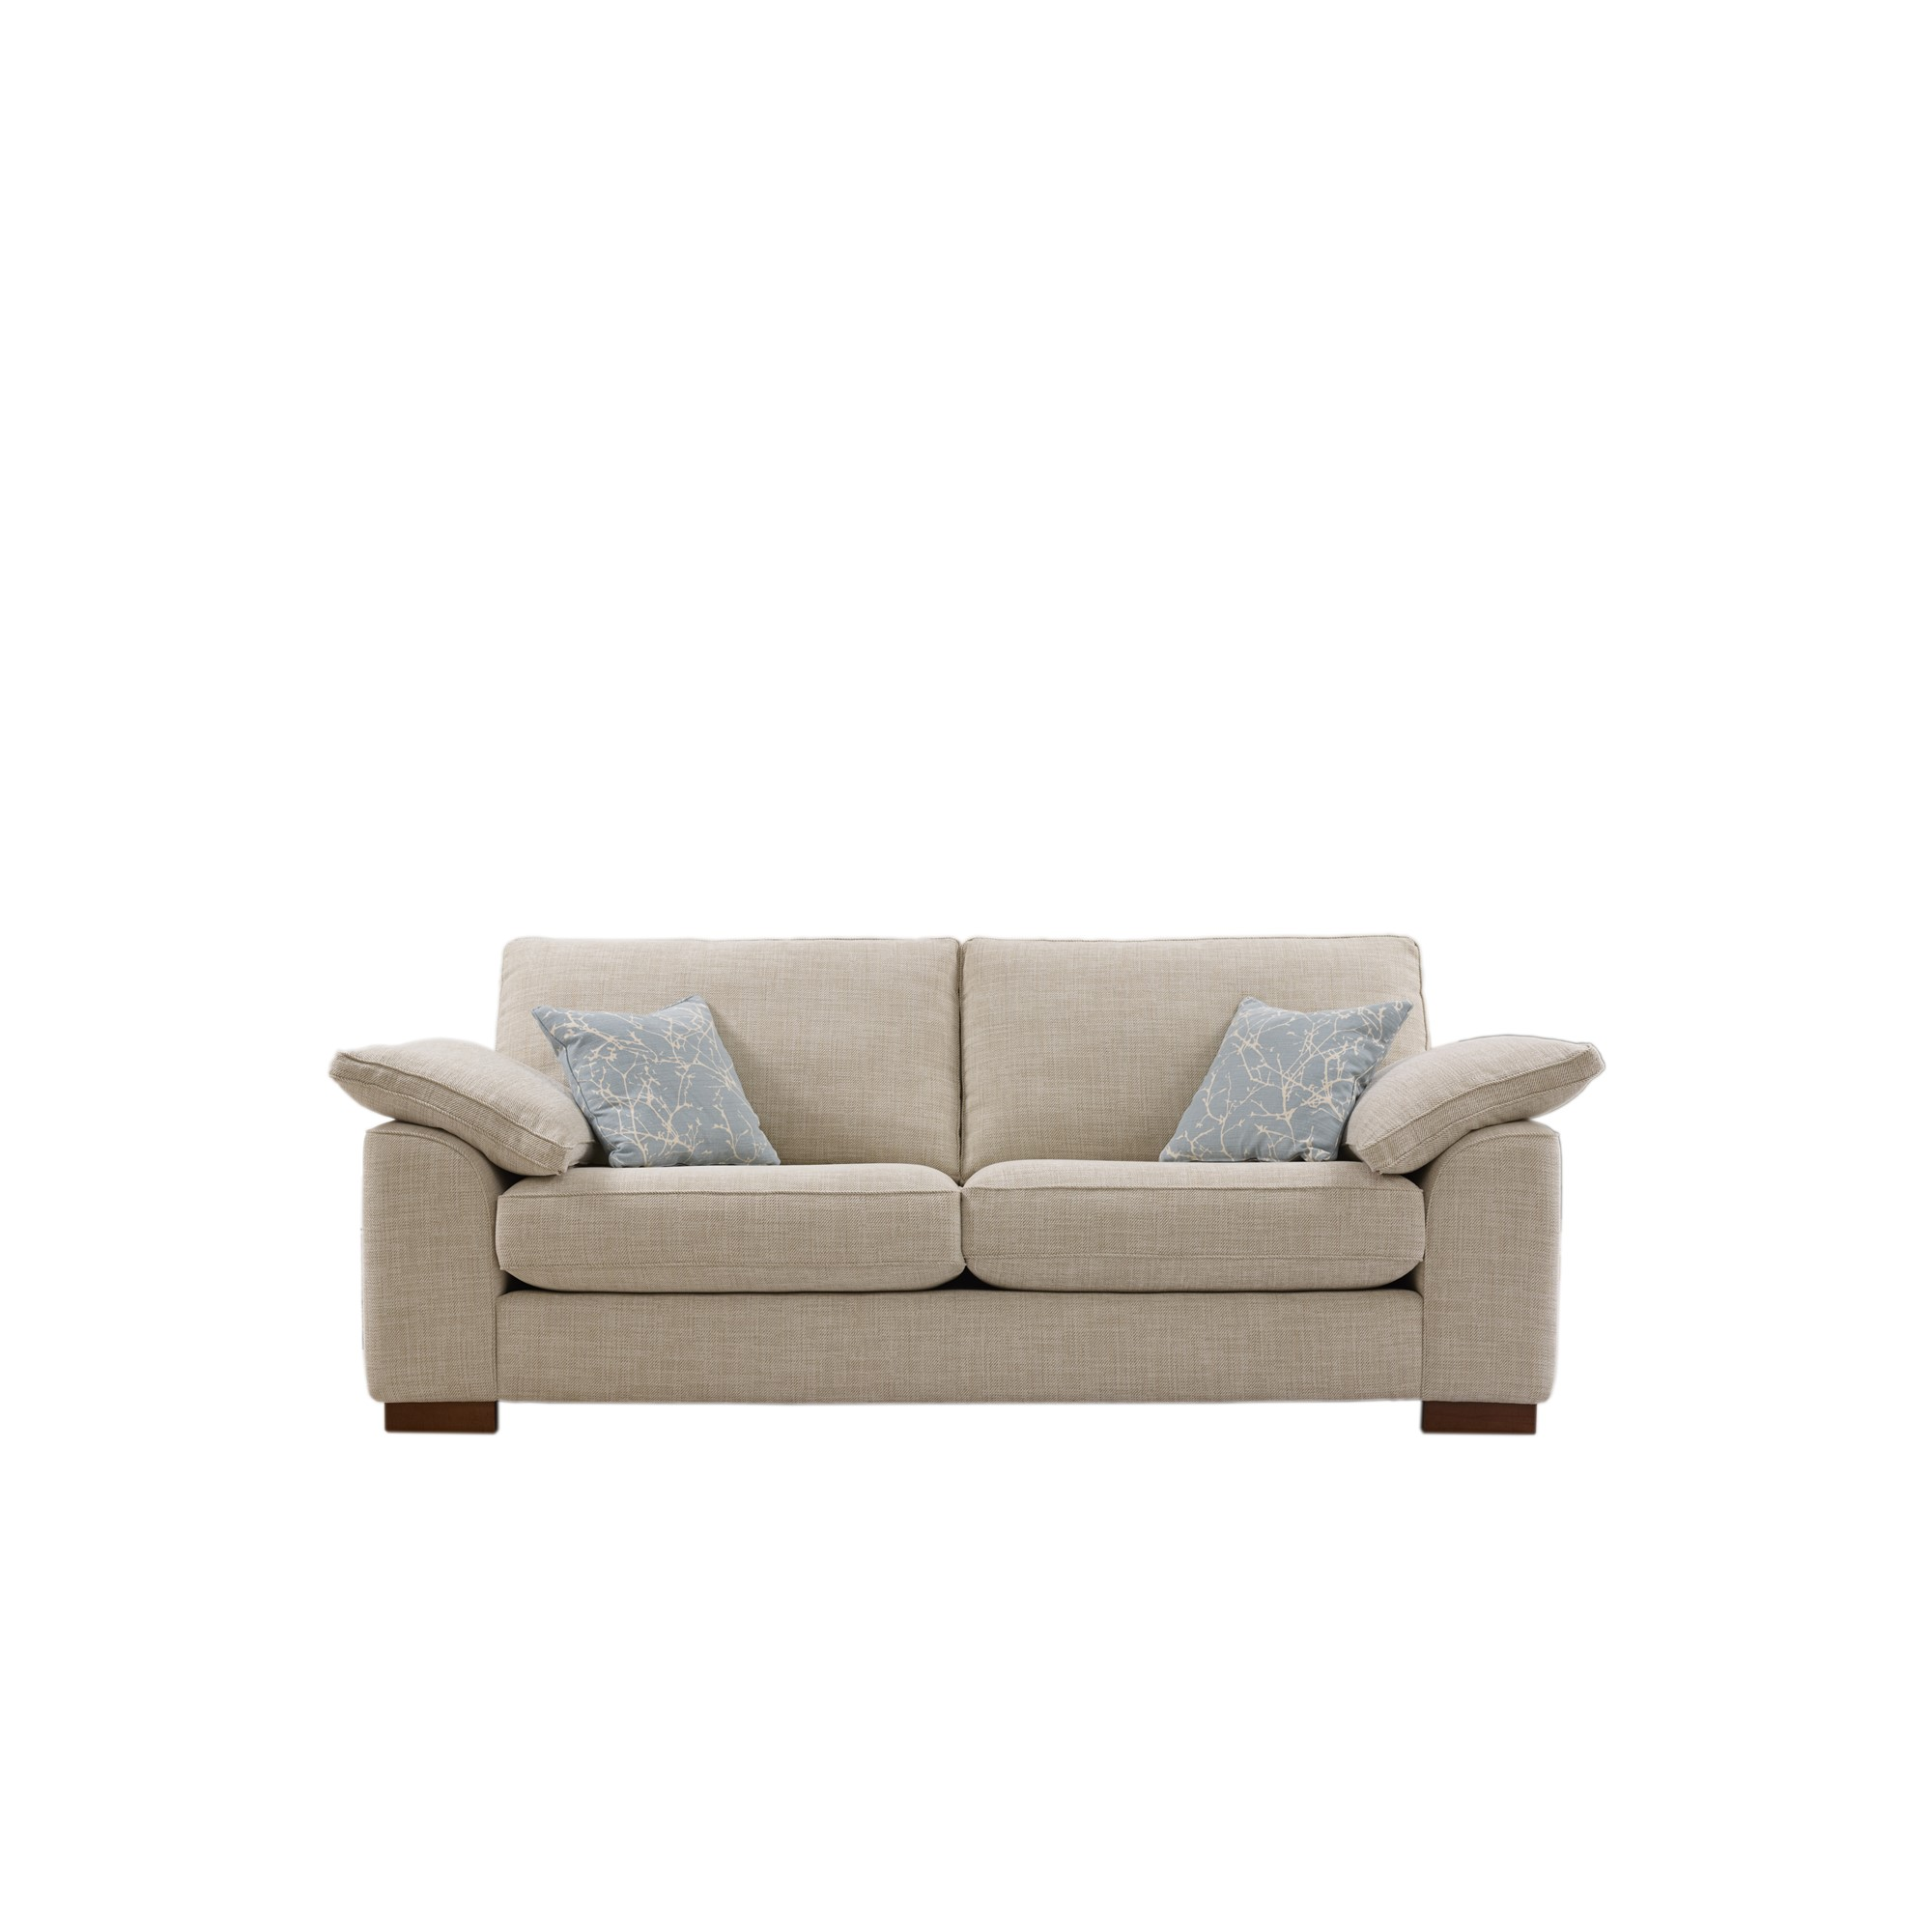 Darcie 4 Seater Sofa Roomes Furniture Interiors Make Yourself A Home